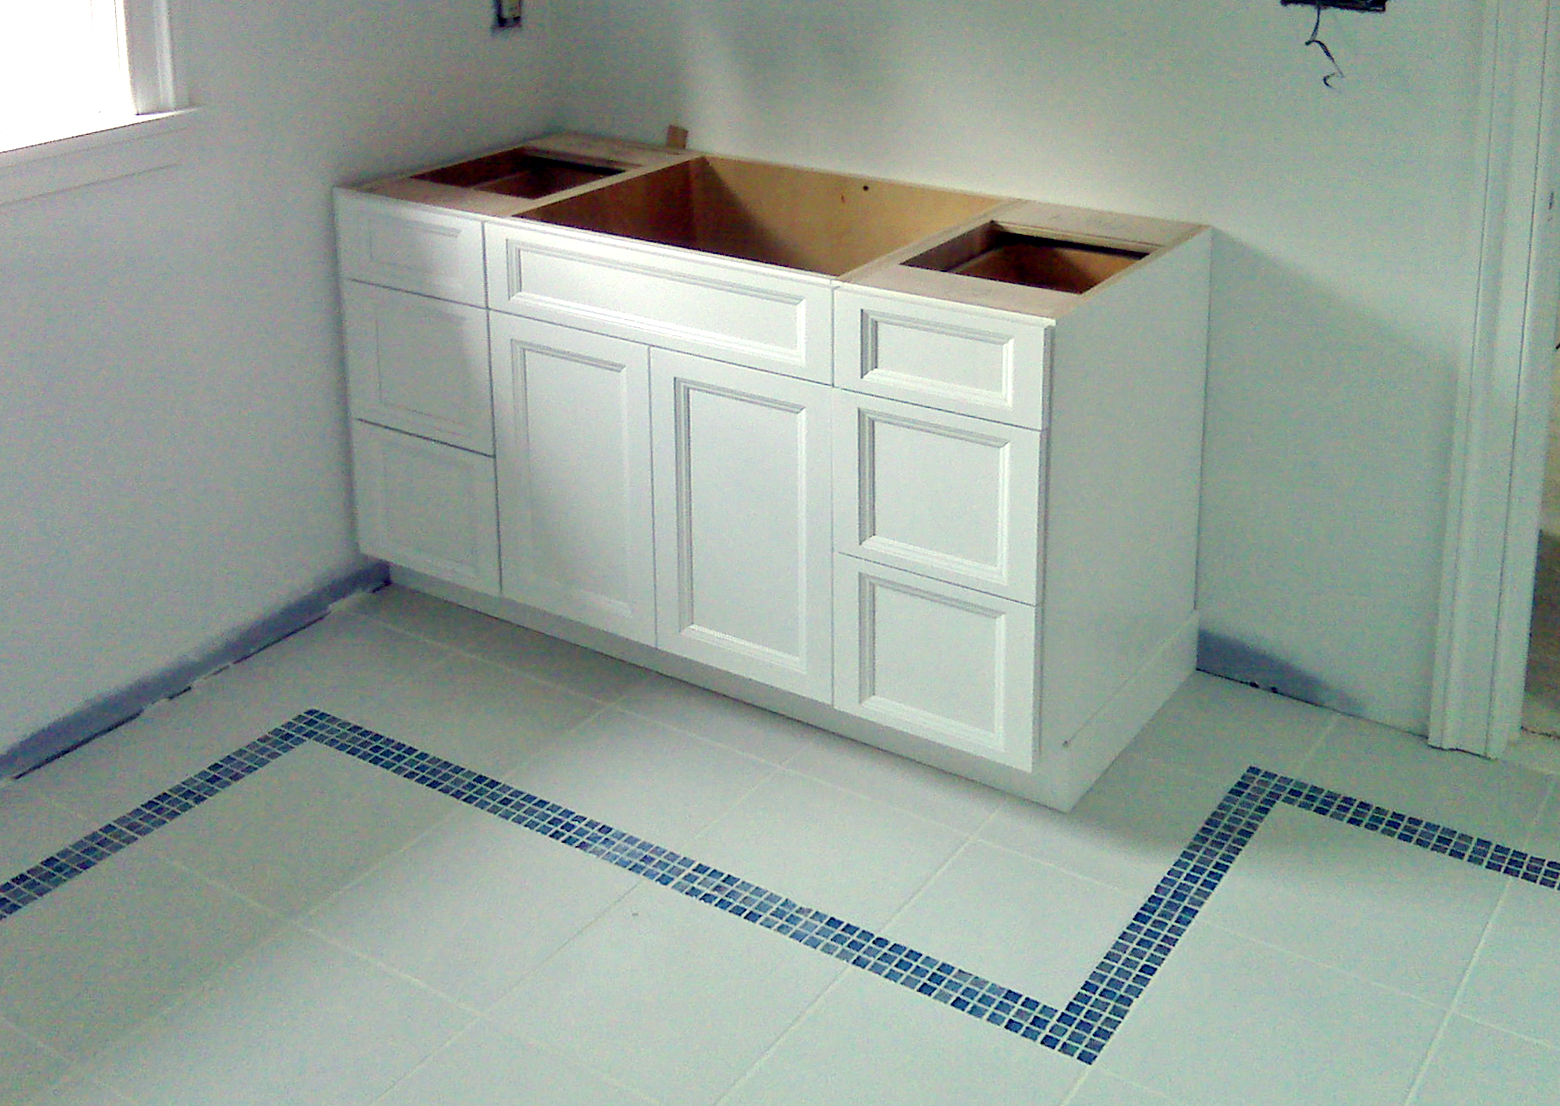 Cabinetry barley mill road for Bathroom cabinets greenville sc